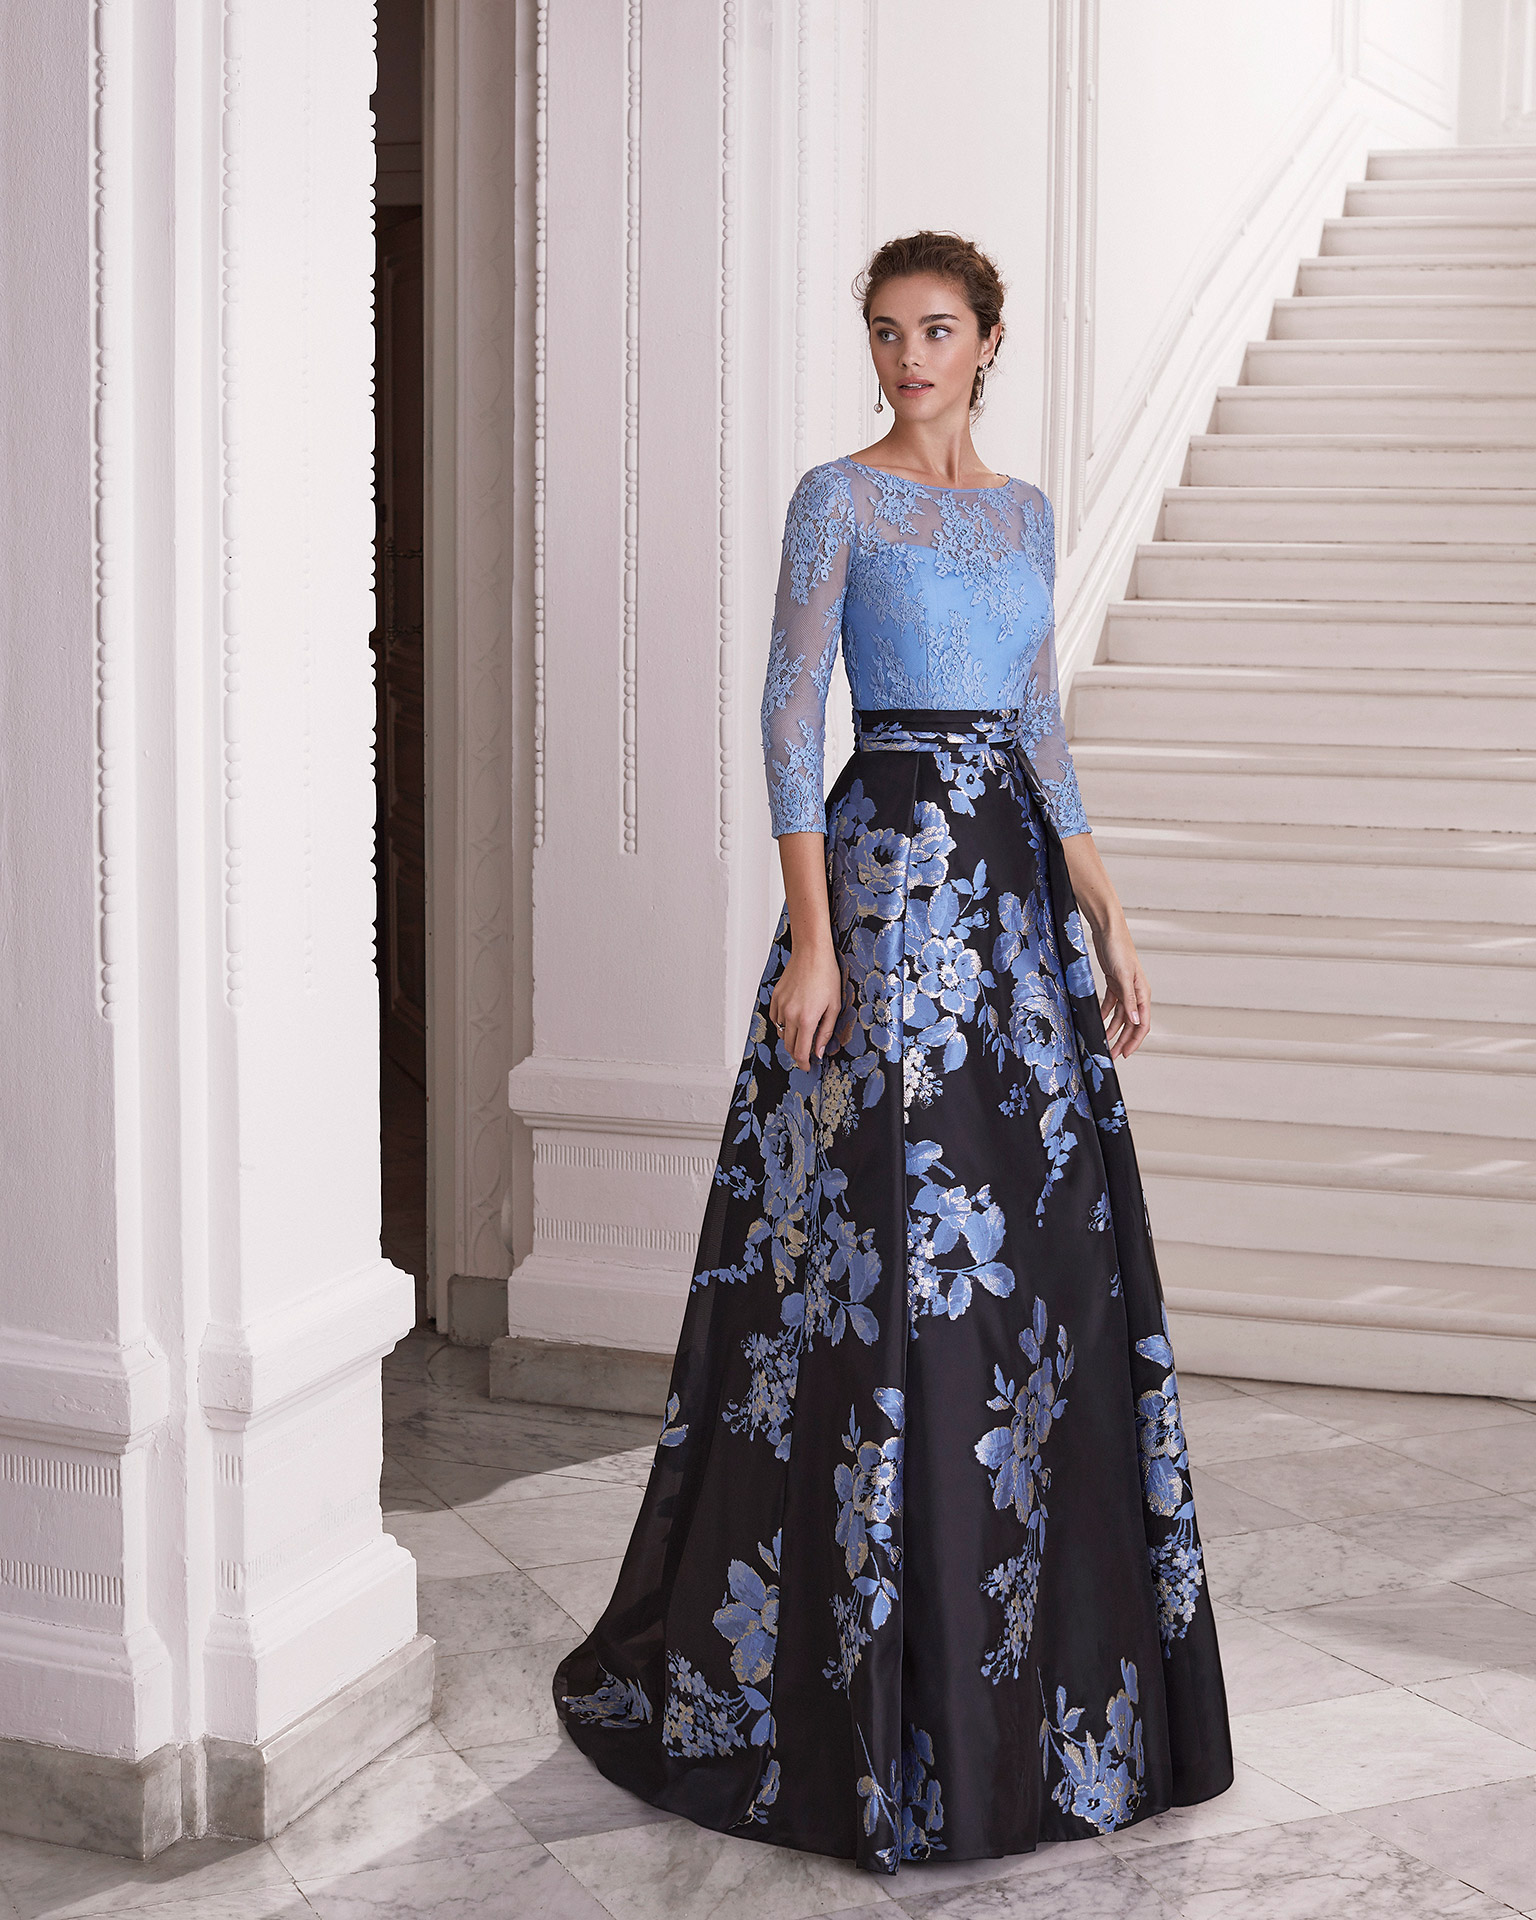 Cocktail dress in Jacquard with bodice in beaded lace. Bateau neckline over sweetheart neckline and closed back with centre opening. With pleated belt. 2021 MARFIL BARCELONA Collection.